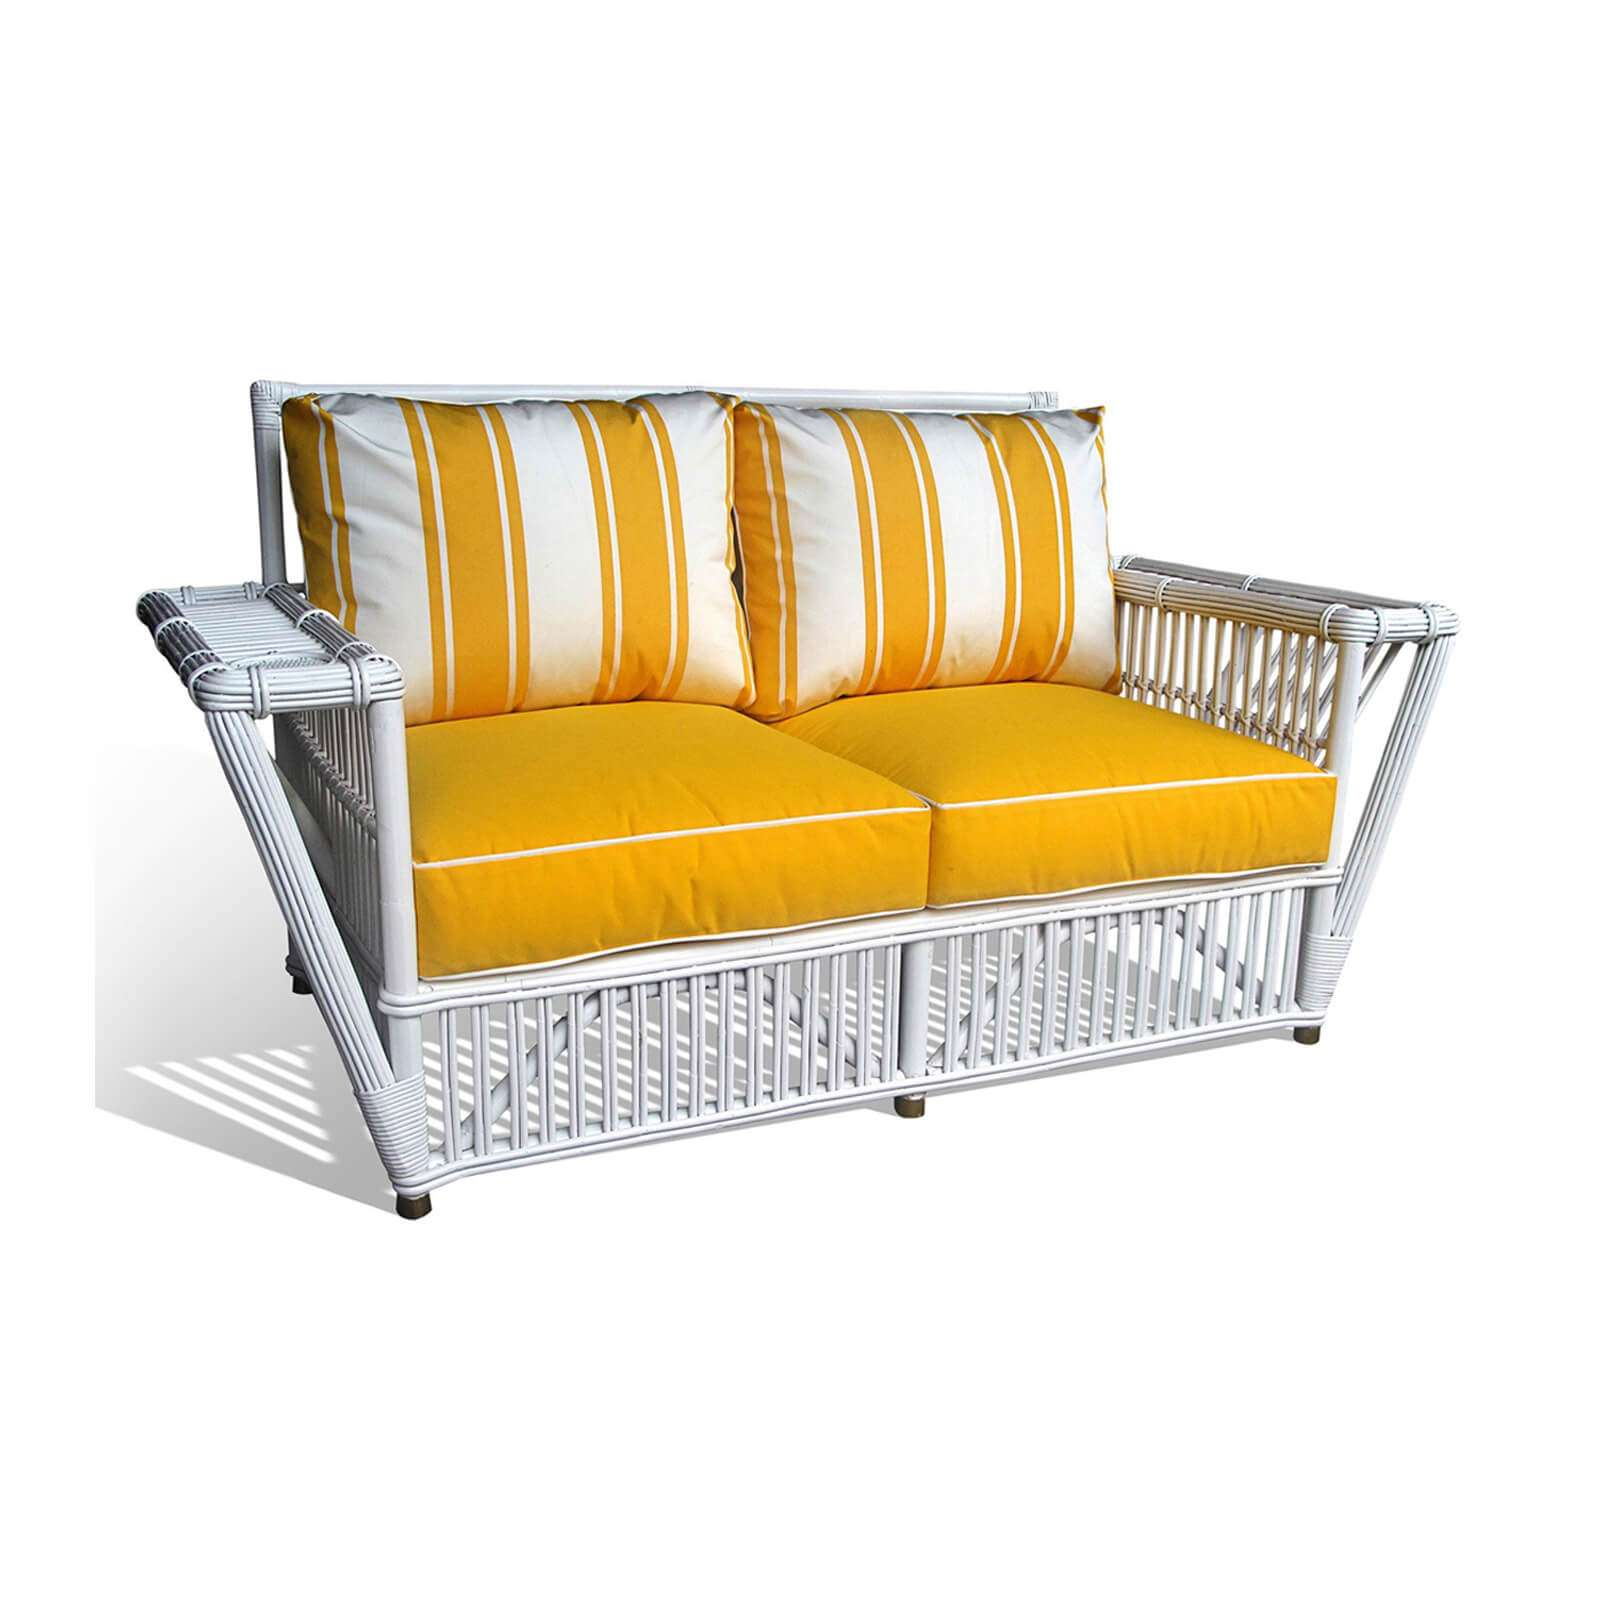 BUNGALOW LOVE SEAT 01 - STUART MEMBERY HOME COLLECTION